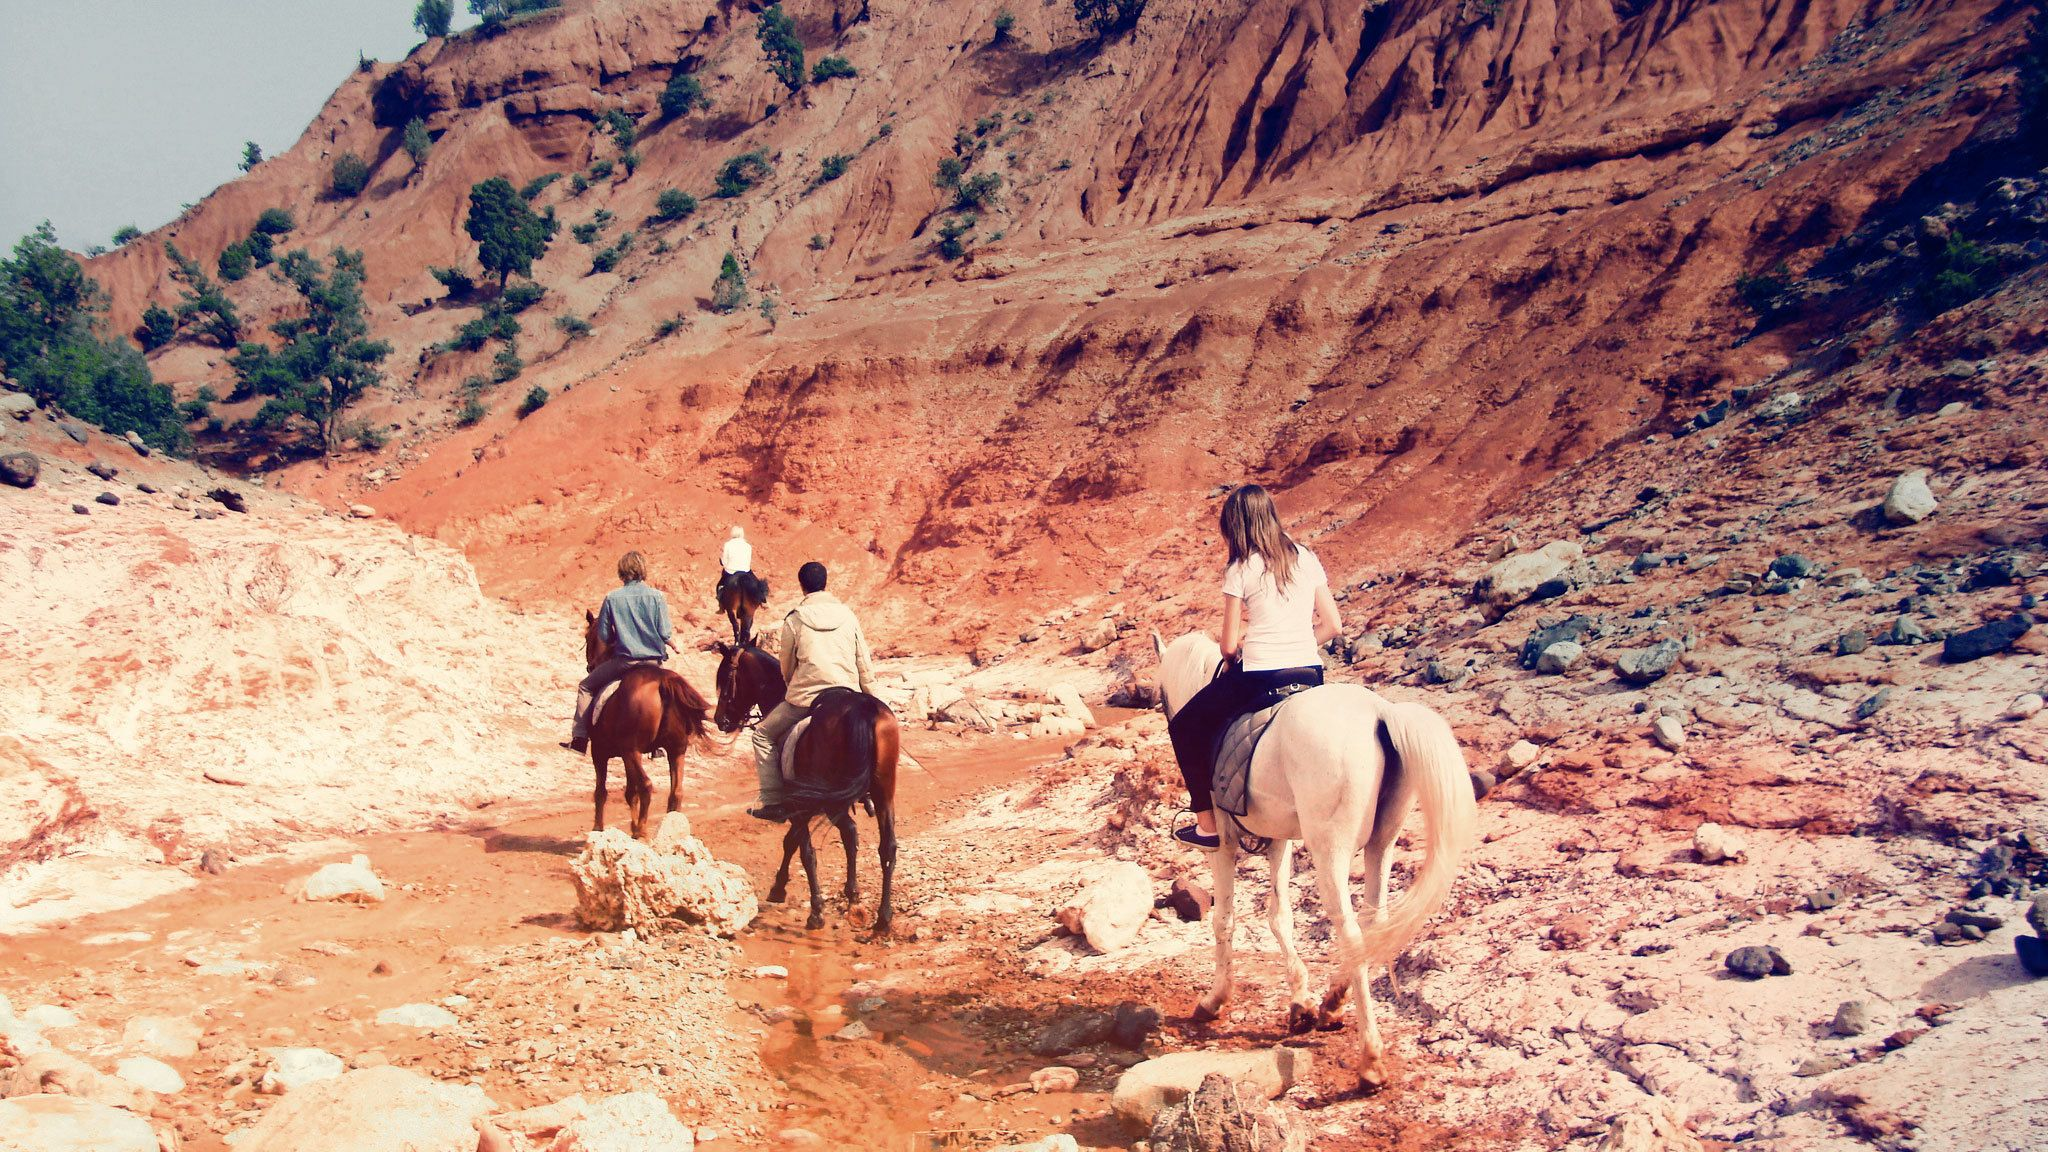 Tourists on horseback riding down creek in Marrakech